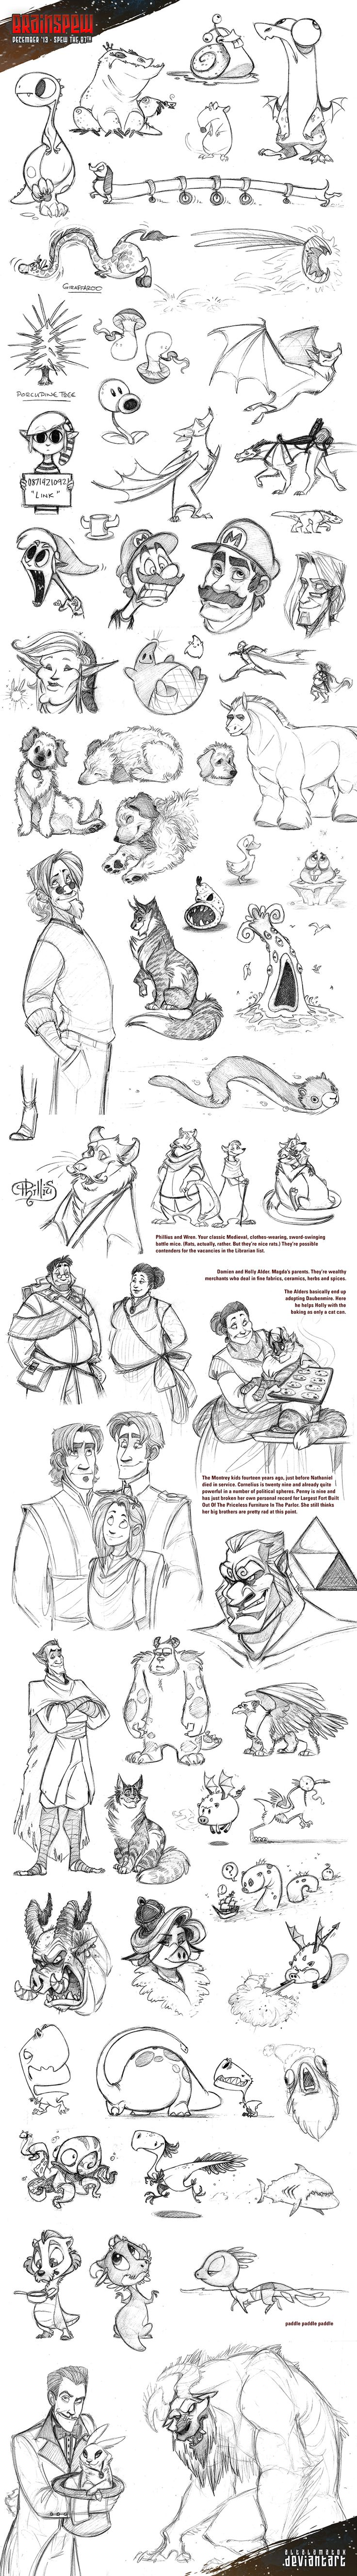 Character Design References Pdf : Best cartoon characters images on pinterest